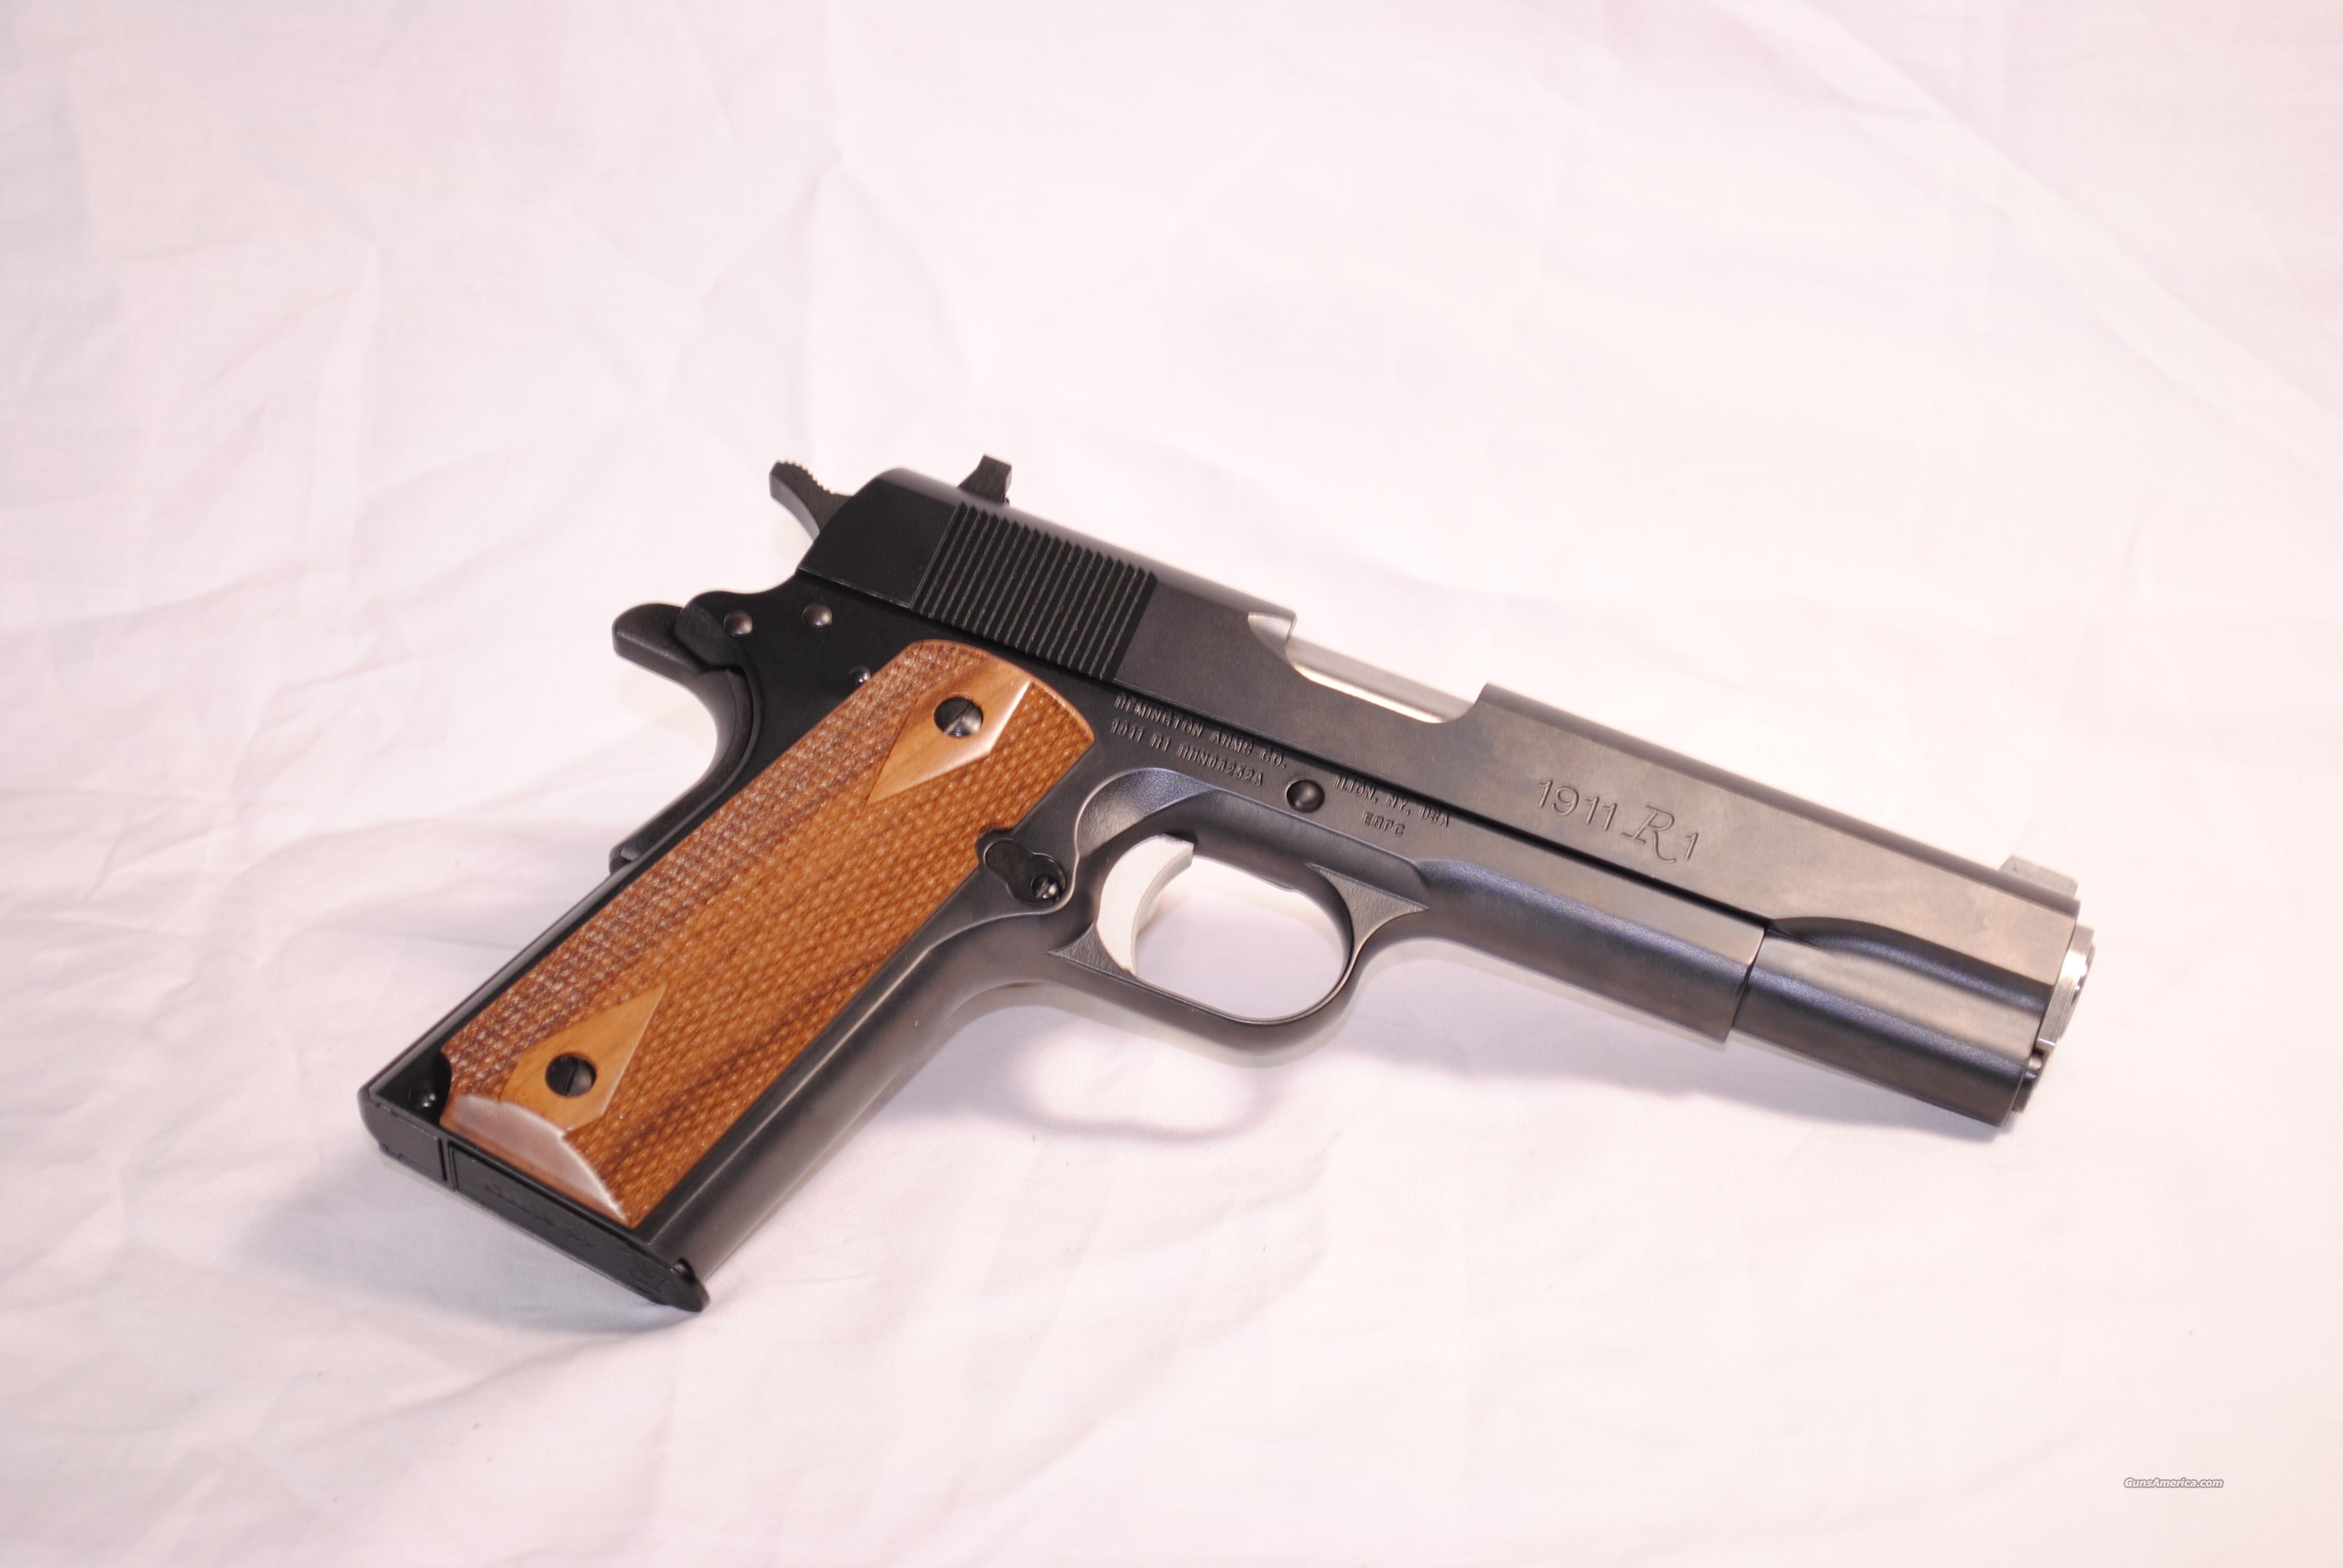 NEW! REMINGTON 1911 R1  Guns > Pistols > Remington Pistols - Modern